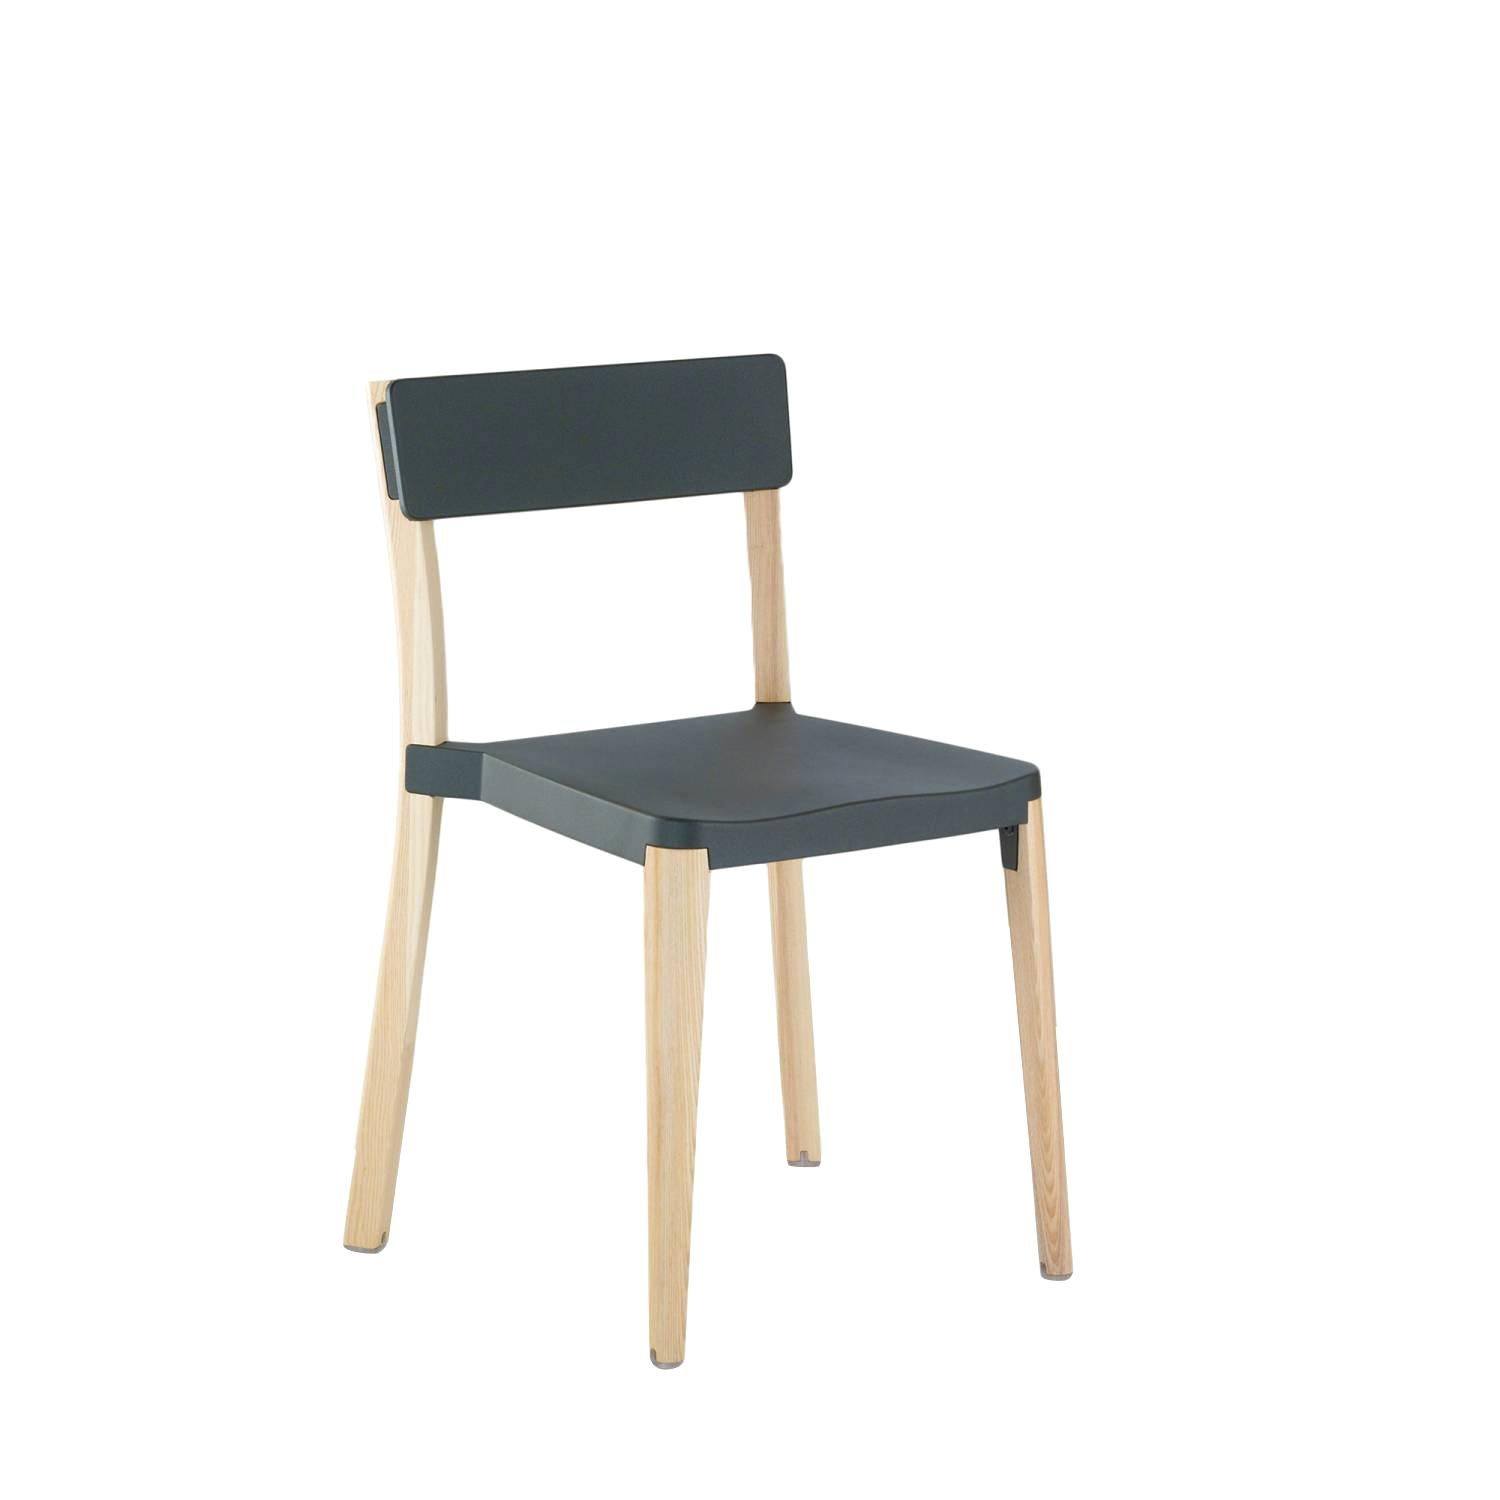 Emeco Lancaster Chair in Dark Gray Aluminum and Ash by Michael Young